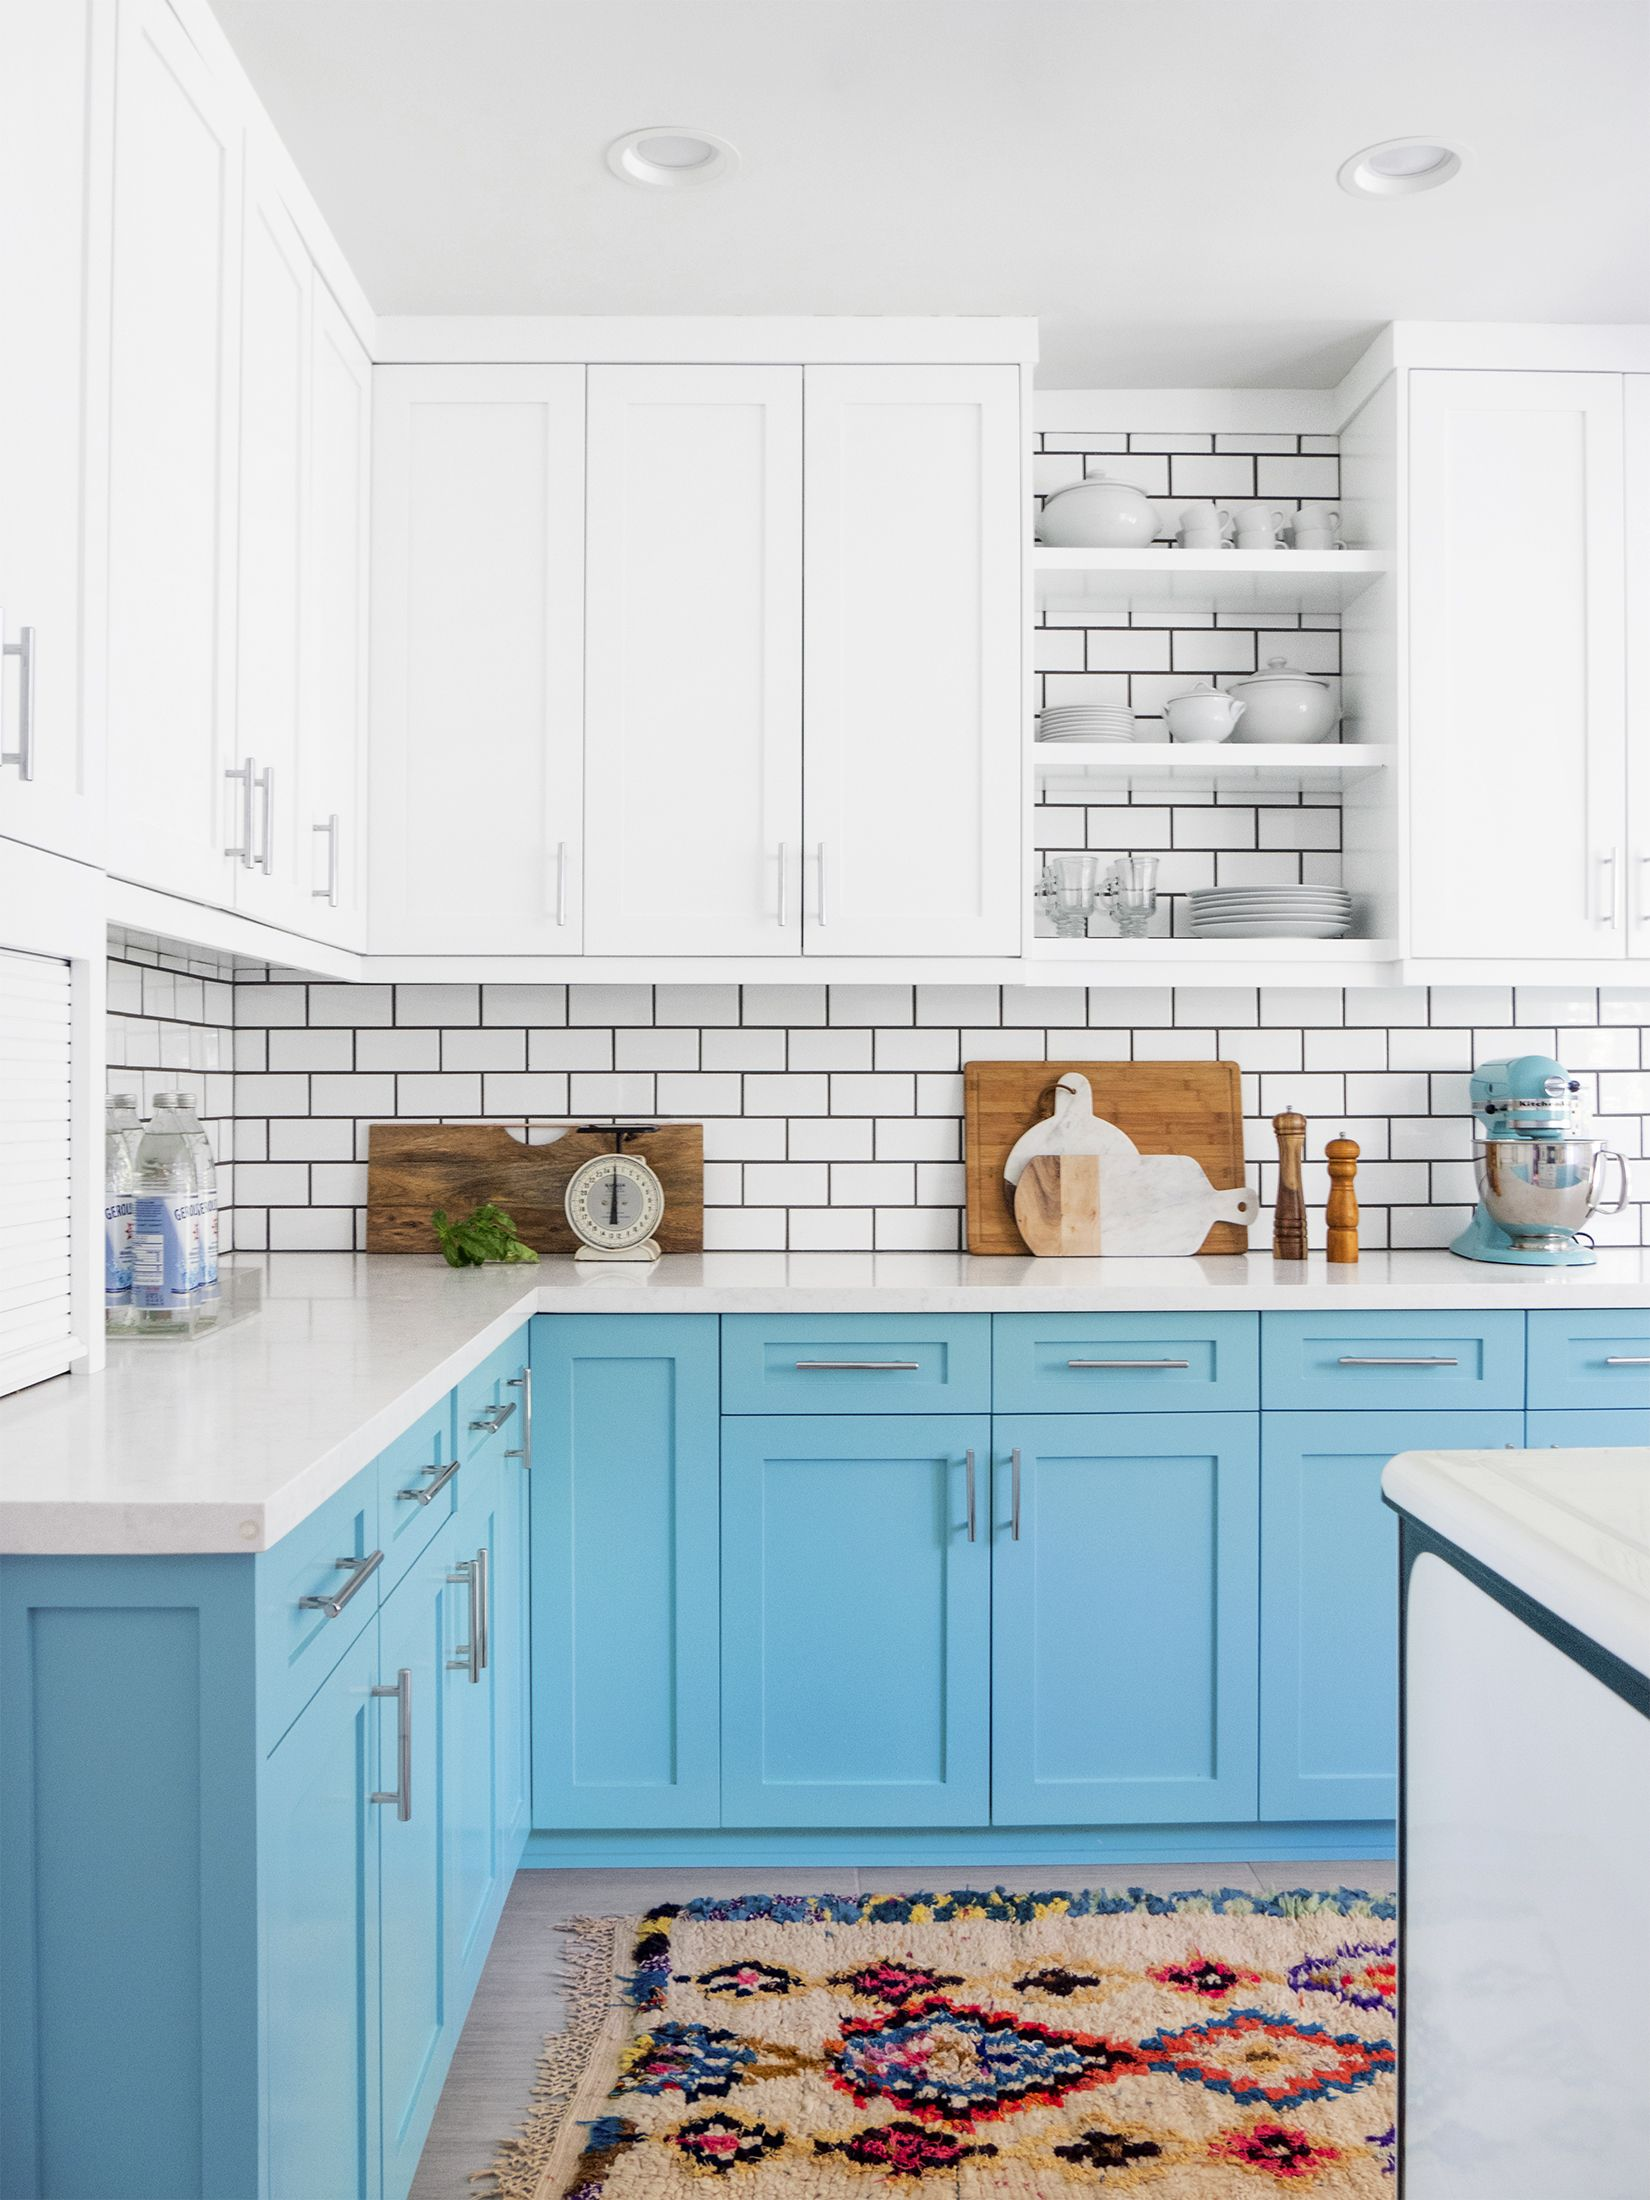 Spring Decor Ideas - Blue Cabinets